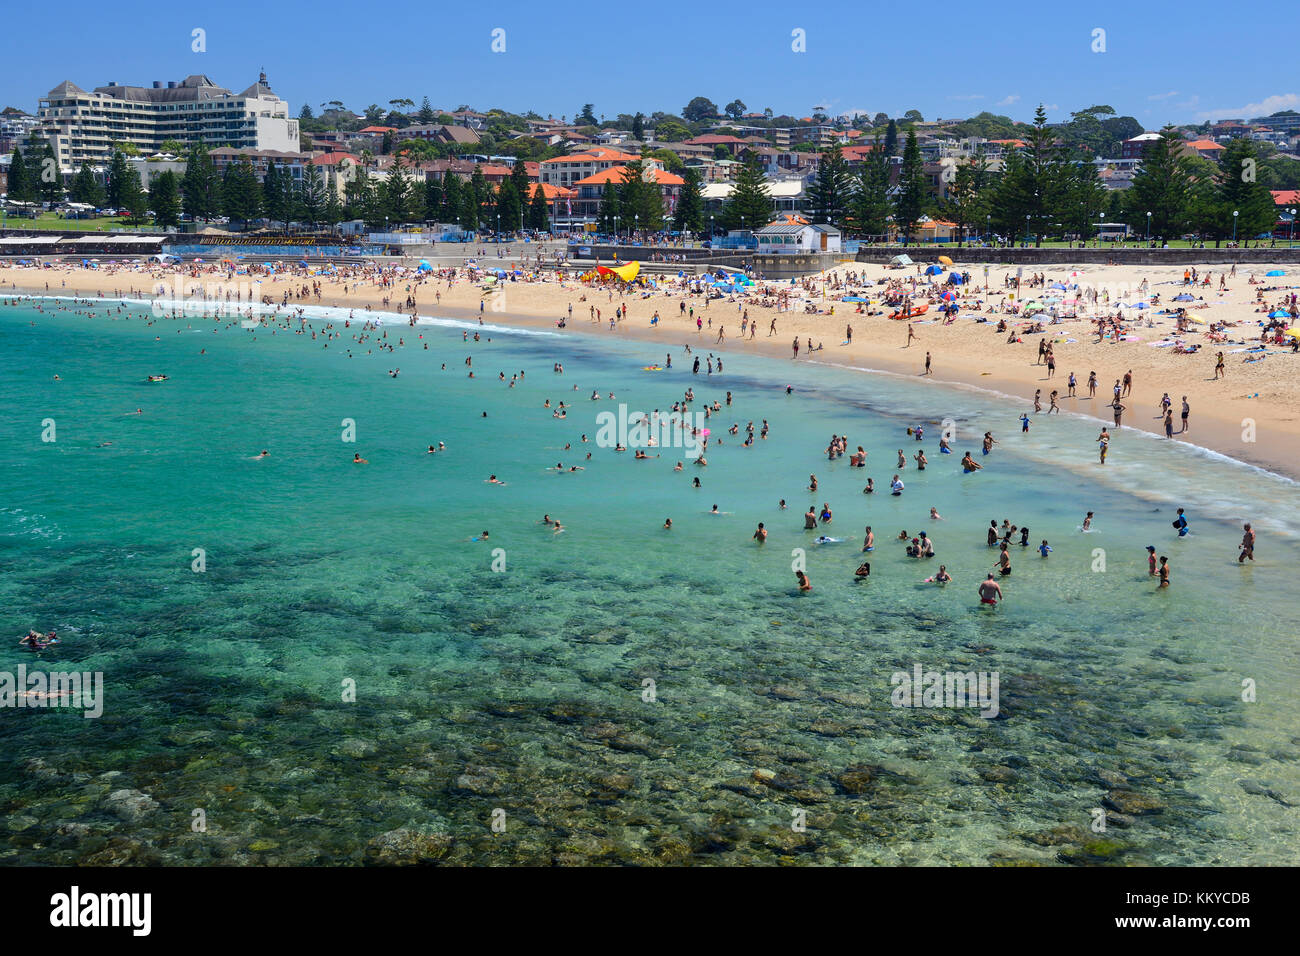 Sunbathers on Coogee Beach, Coogee, an eastern suburb of Sydney, New South Wales, Australia - Stock Image